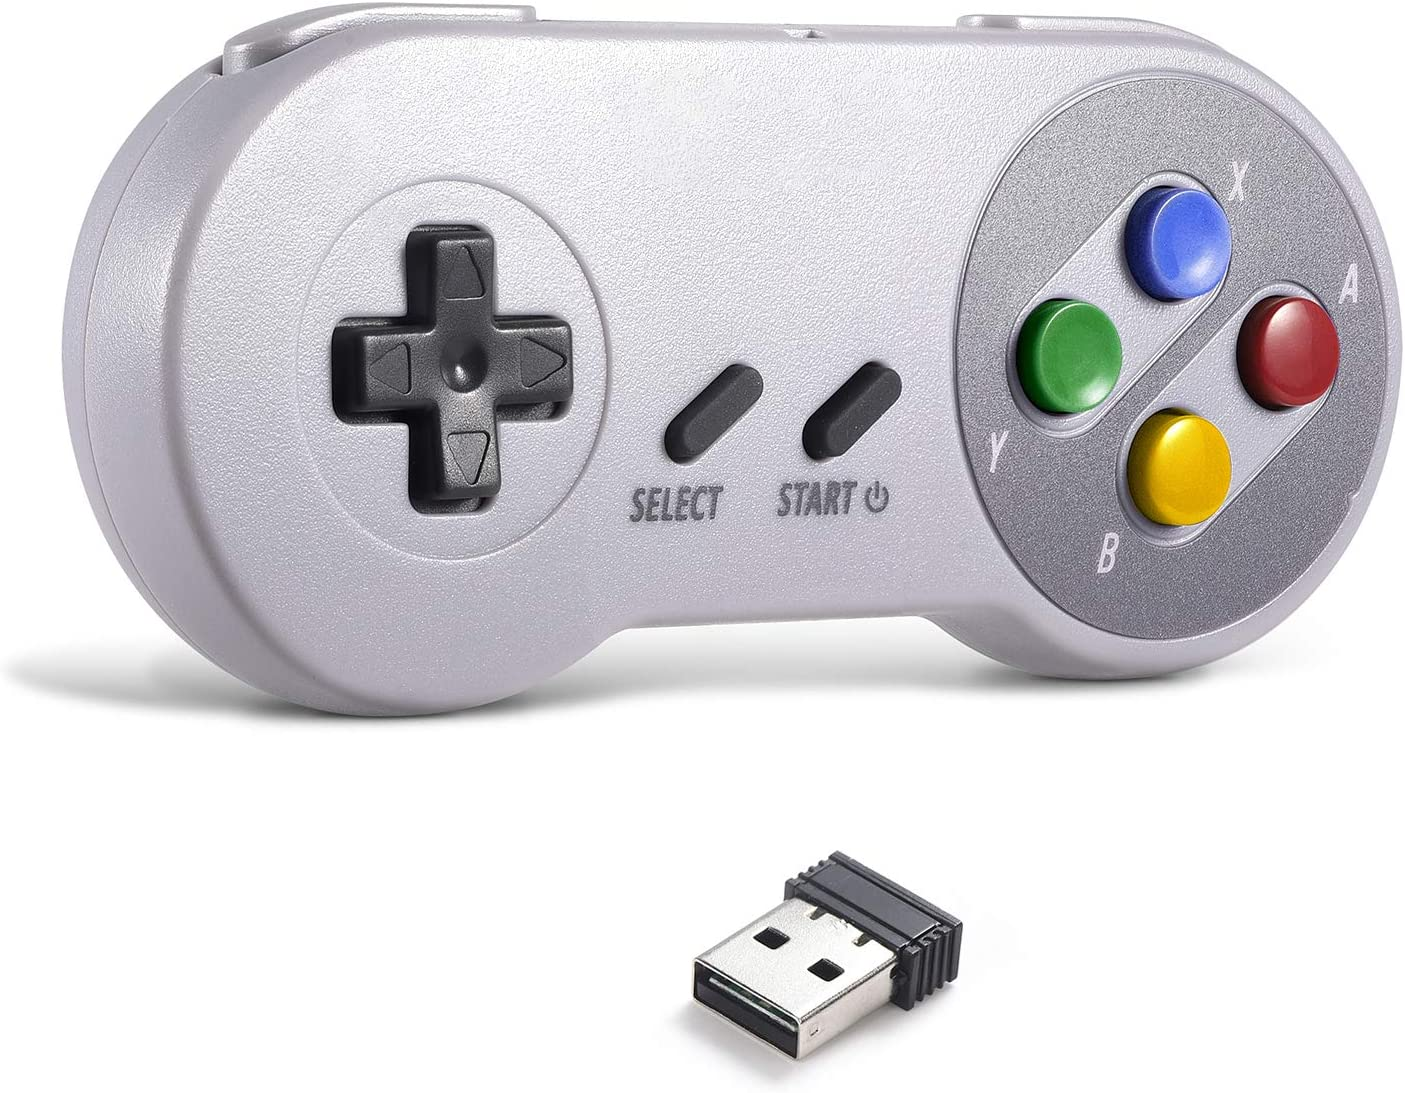 MODESLAB 2.4G Wireless Controller for Luxury SNES Rechargeable USB Gam 2021 spring and summer new